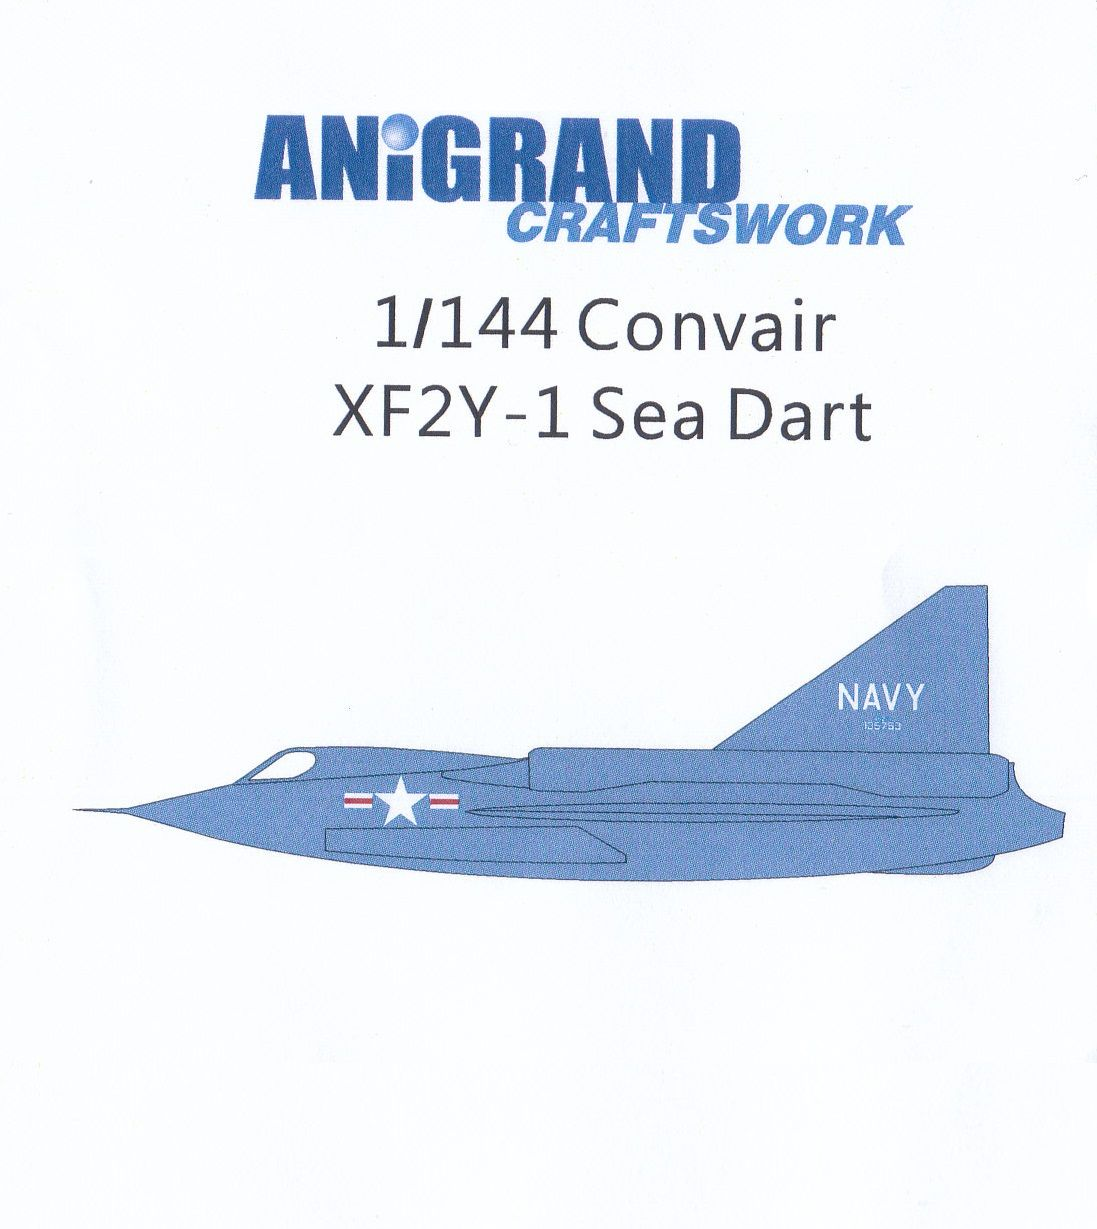 /Anigrand_Catalog/Anigrand/anigrand/dameya/1-144 Convair XF2Y-1 Sea Dart.jpg